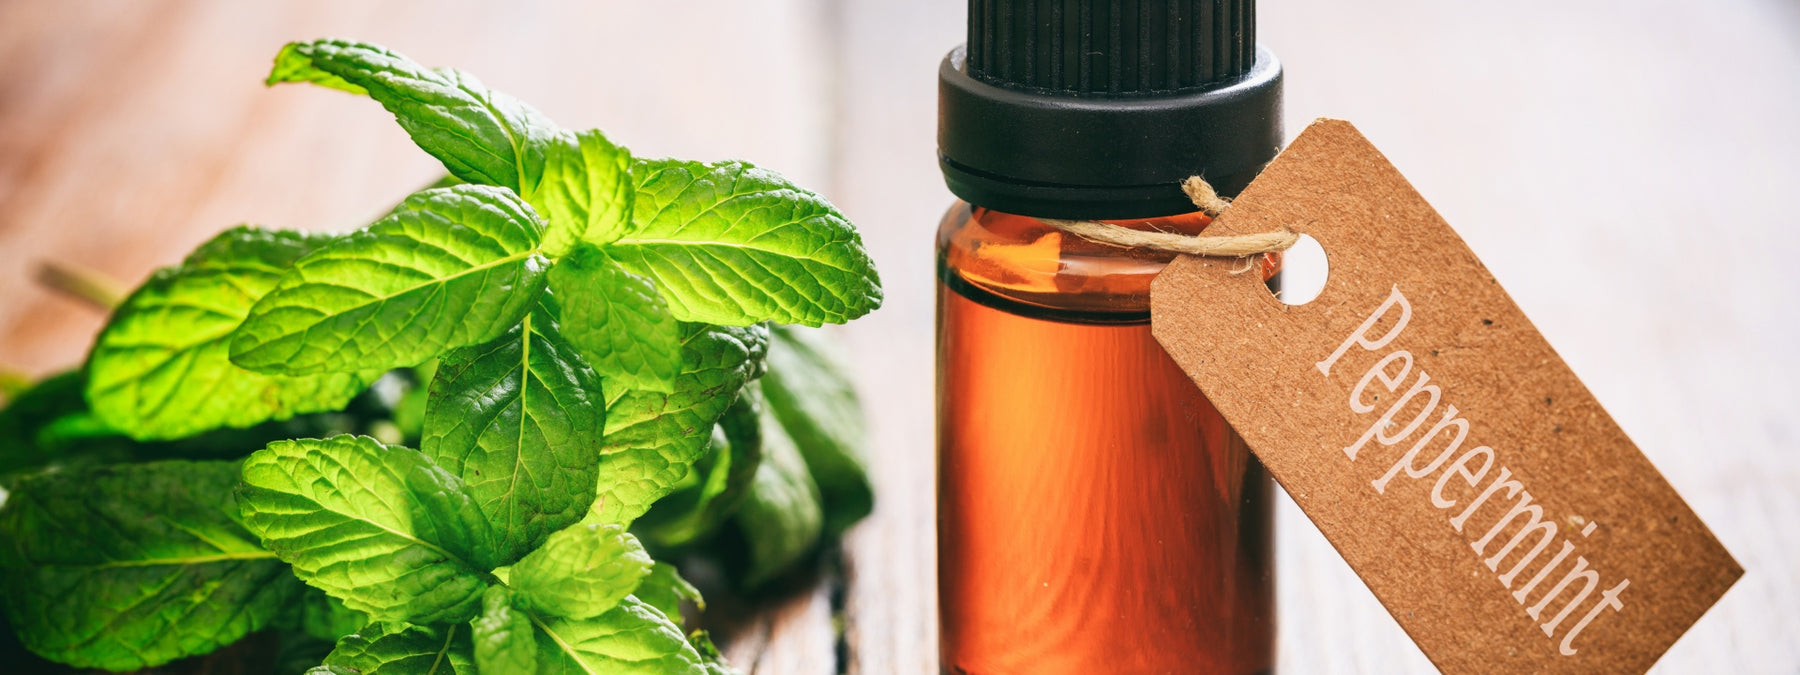 Peppermint Essential Oil - History, Uses, and Benefits